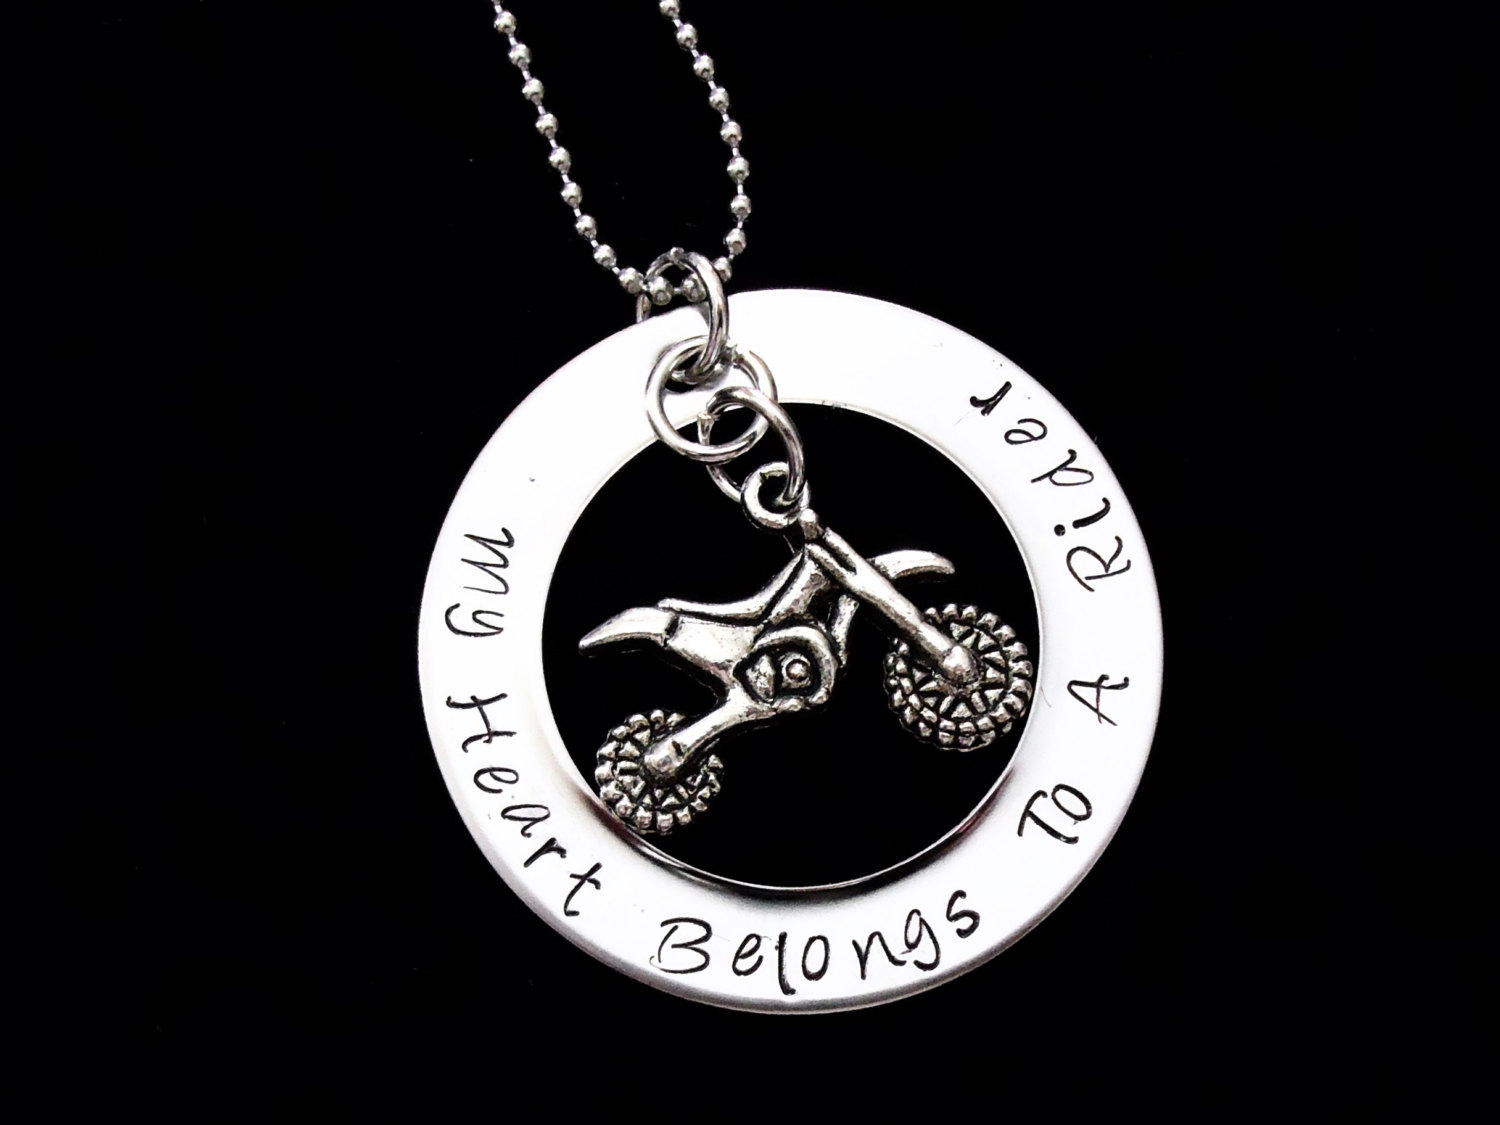 petite pendant child mothers name shop jewelry custom offset s hand stamped mom mother birthstone washer necklace childs